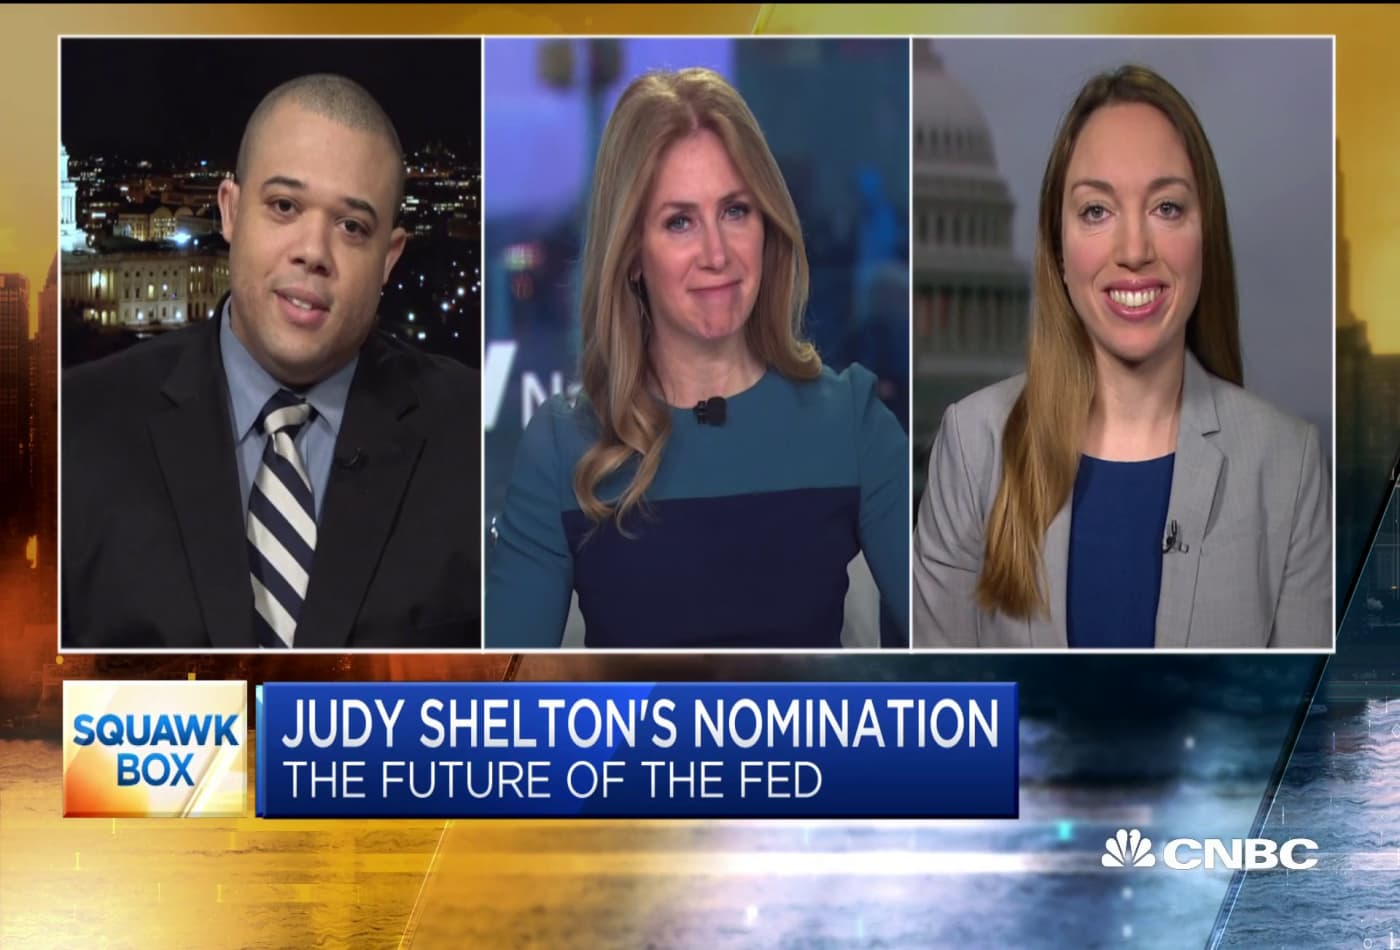 Heritage's Boccia: Judy Shelton would 'add an important diverse viewpoint' to the Fed